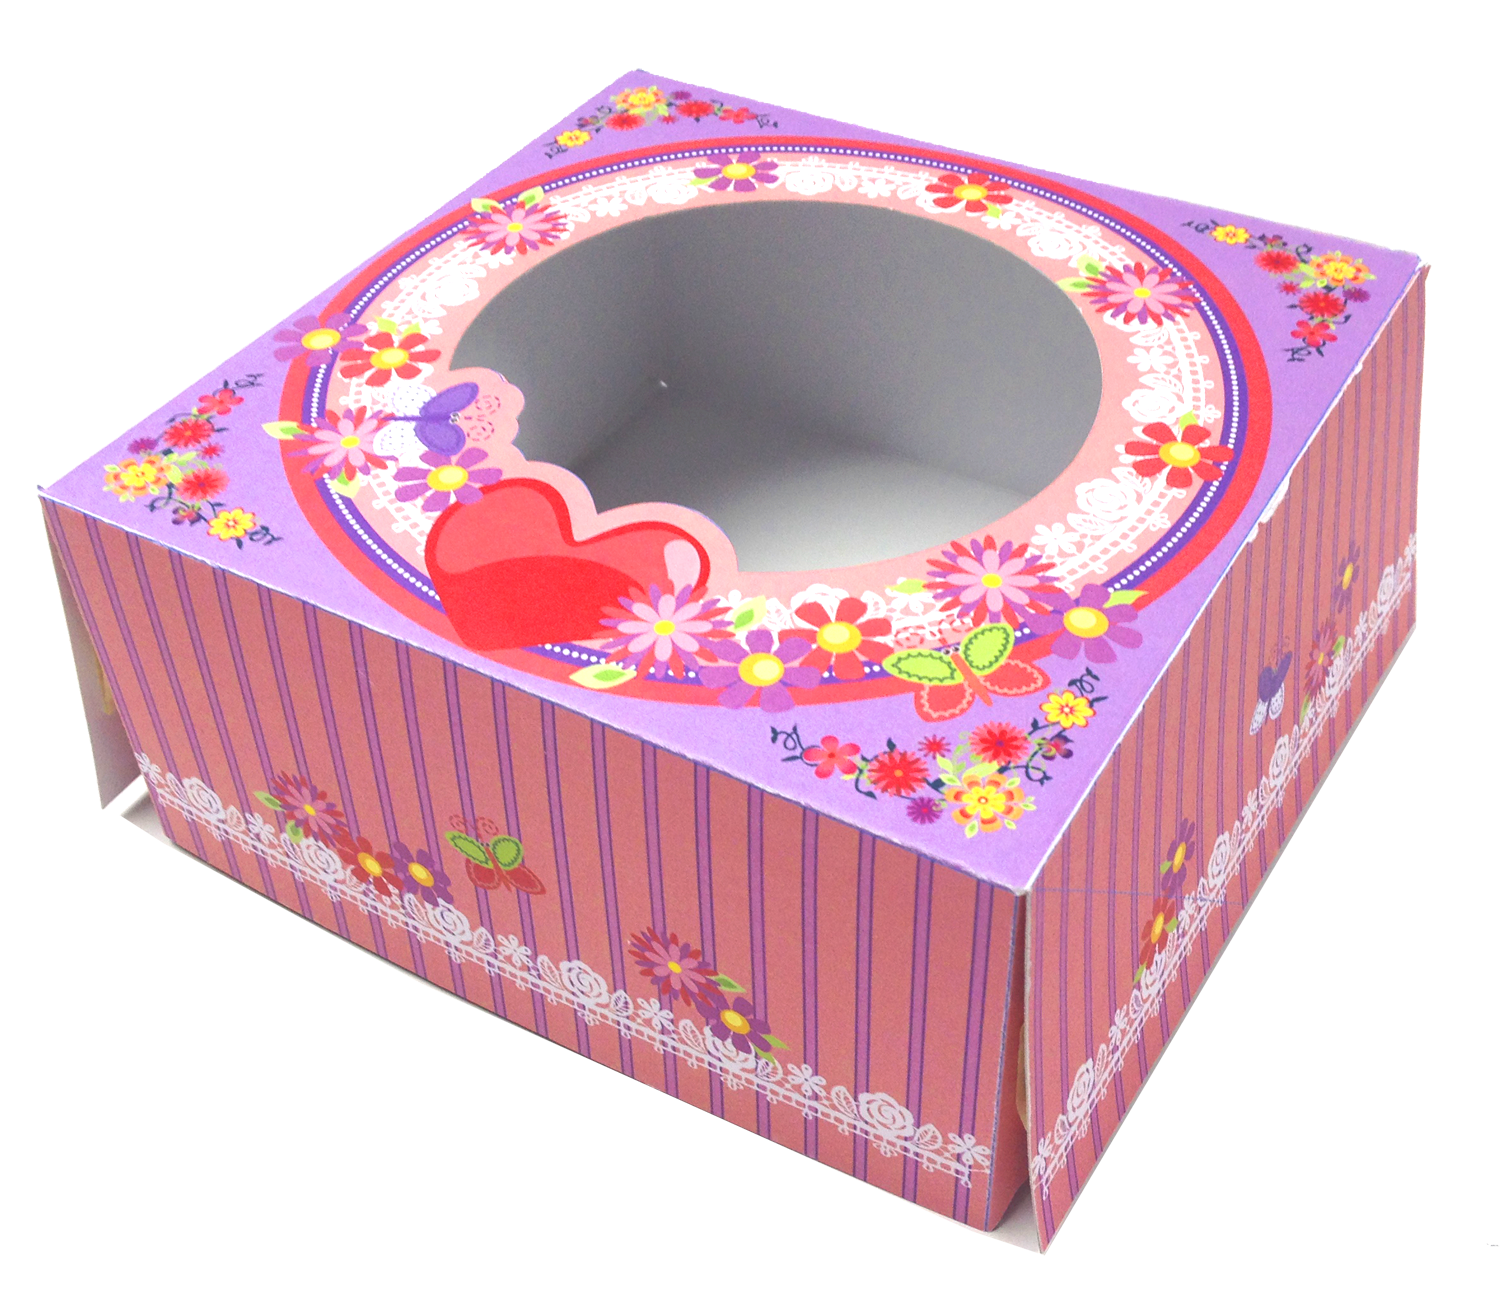 Image result for cake boxes png